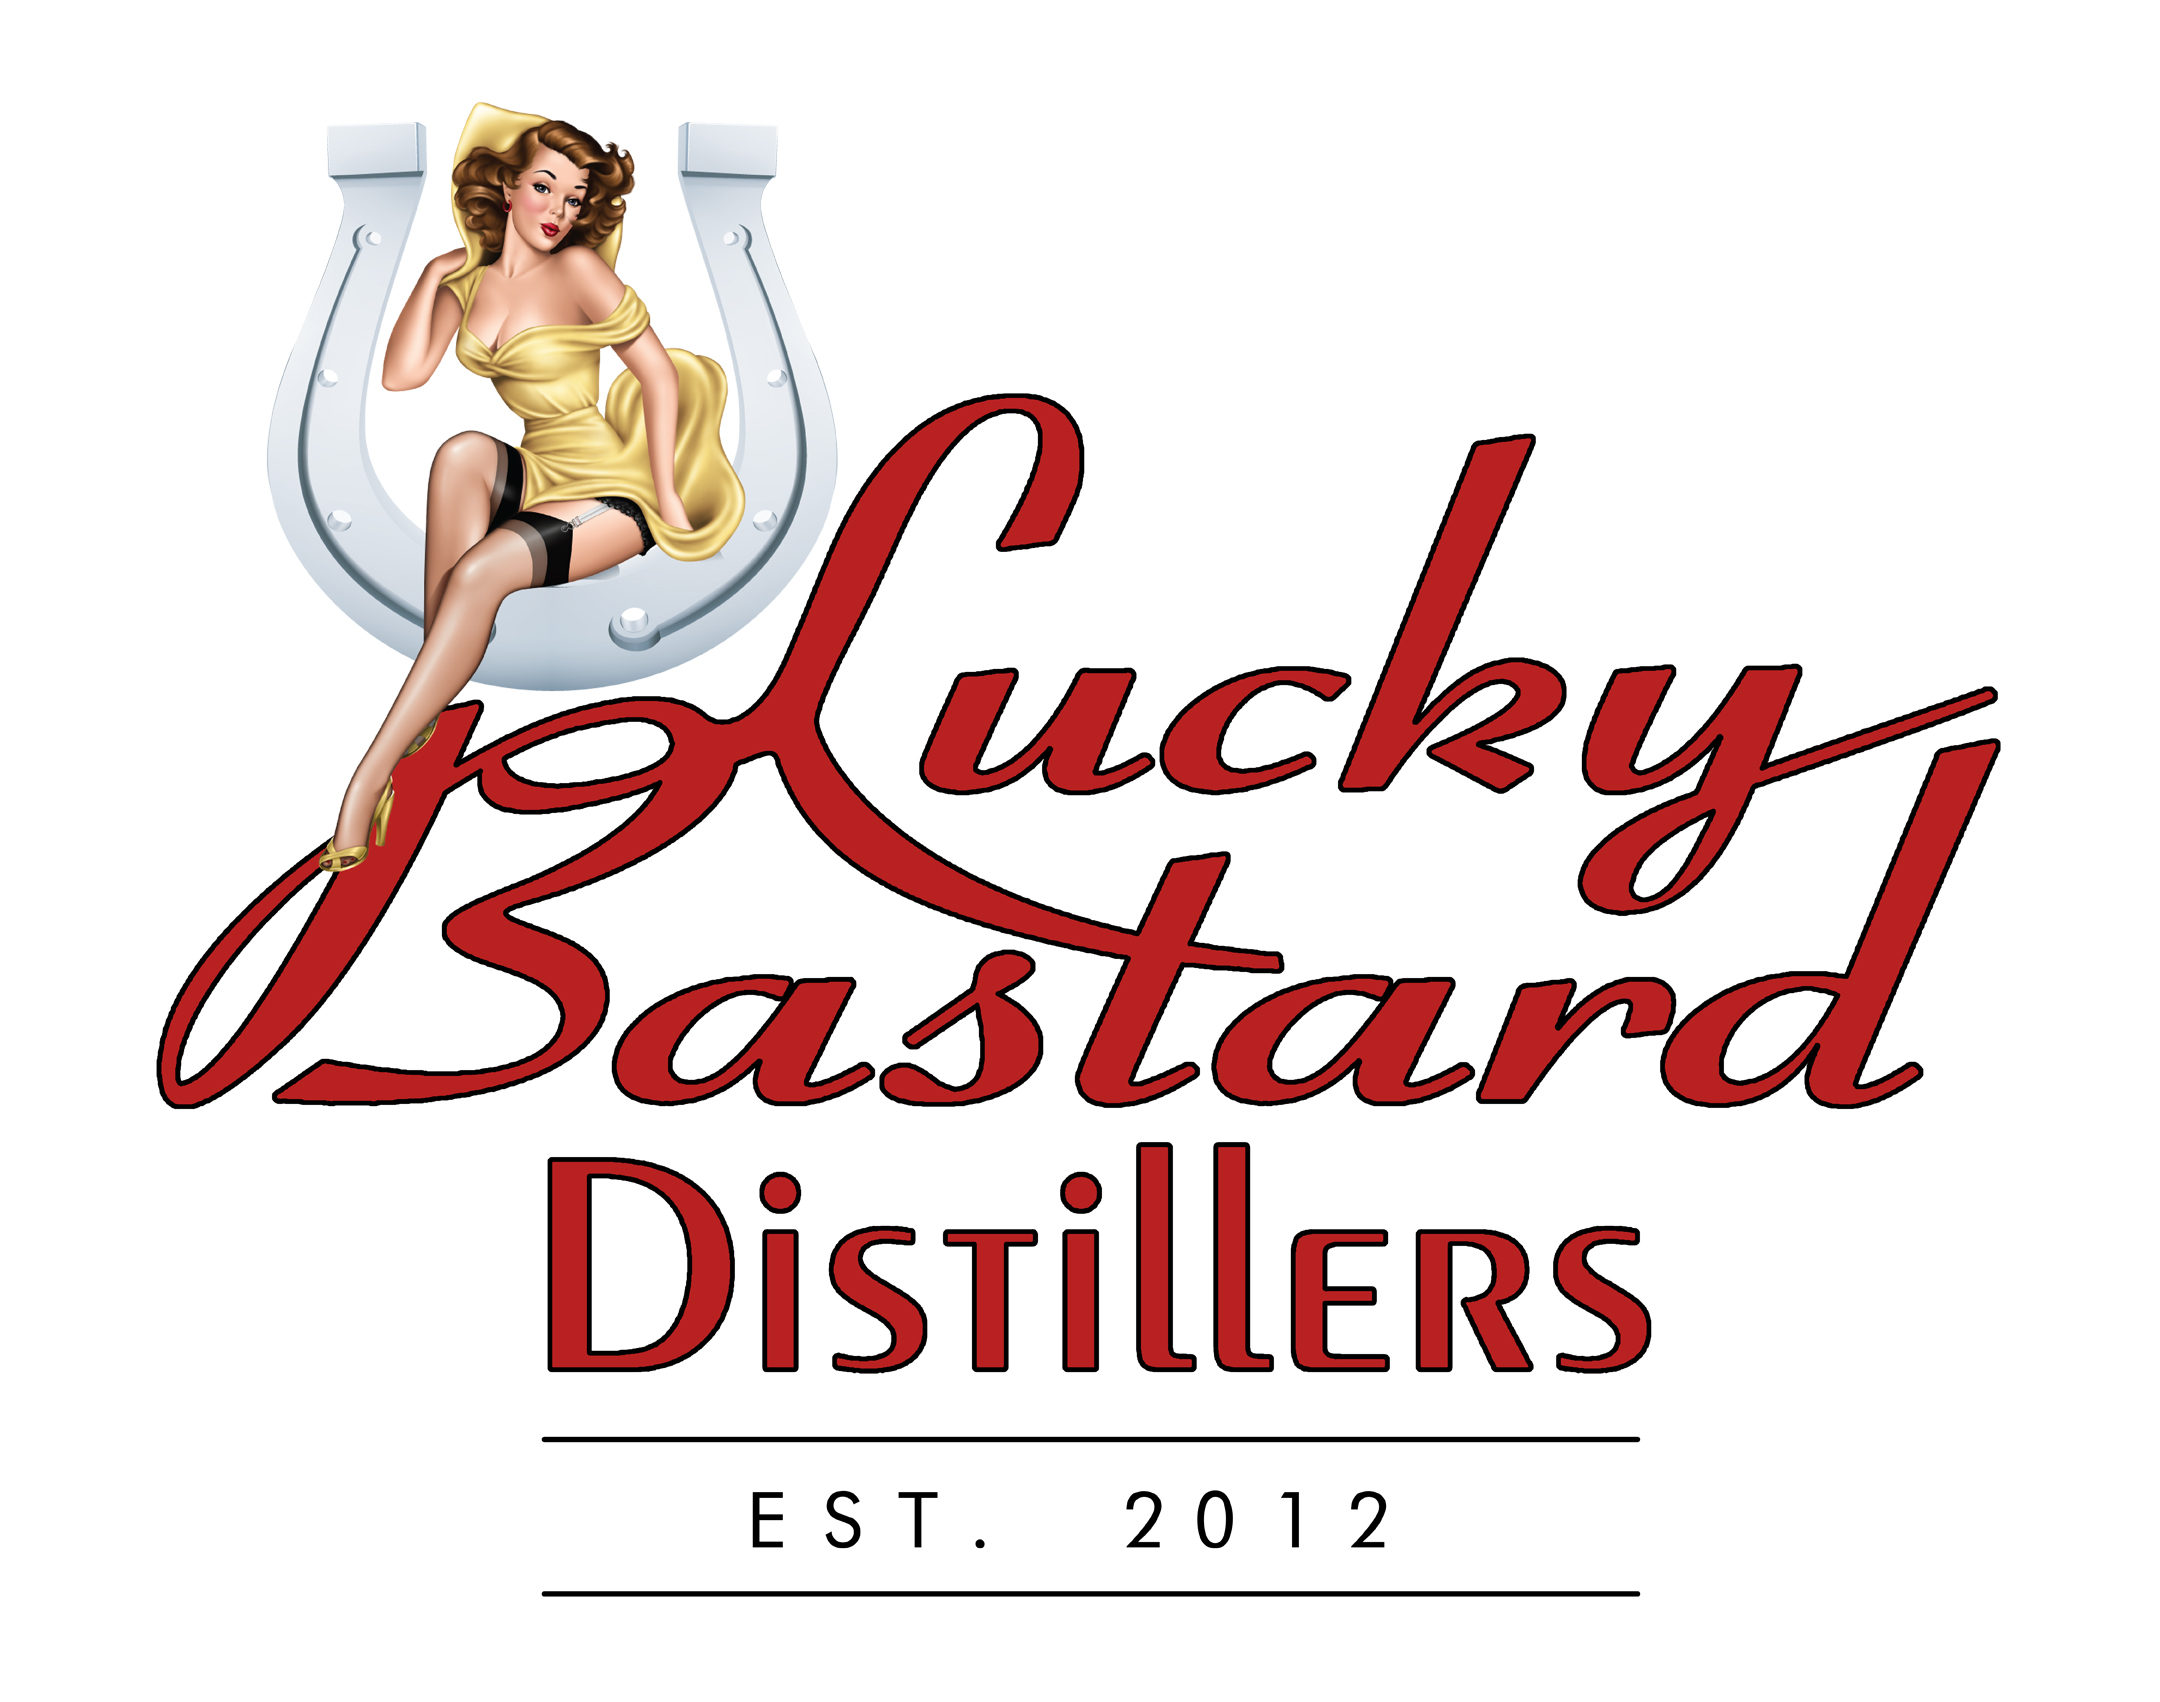 Lucky-Bastard-Distillers-Est.-2012-Vodka-Girl-Top-Left-copy.jpg